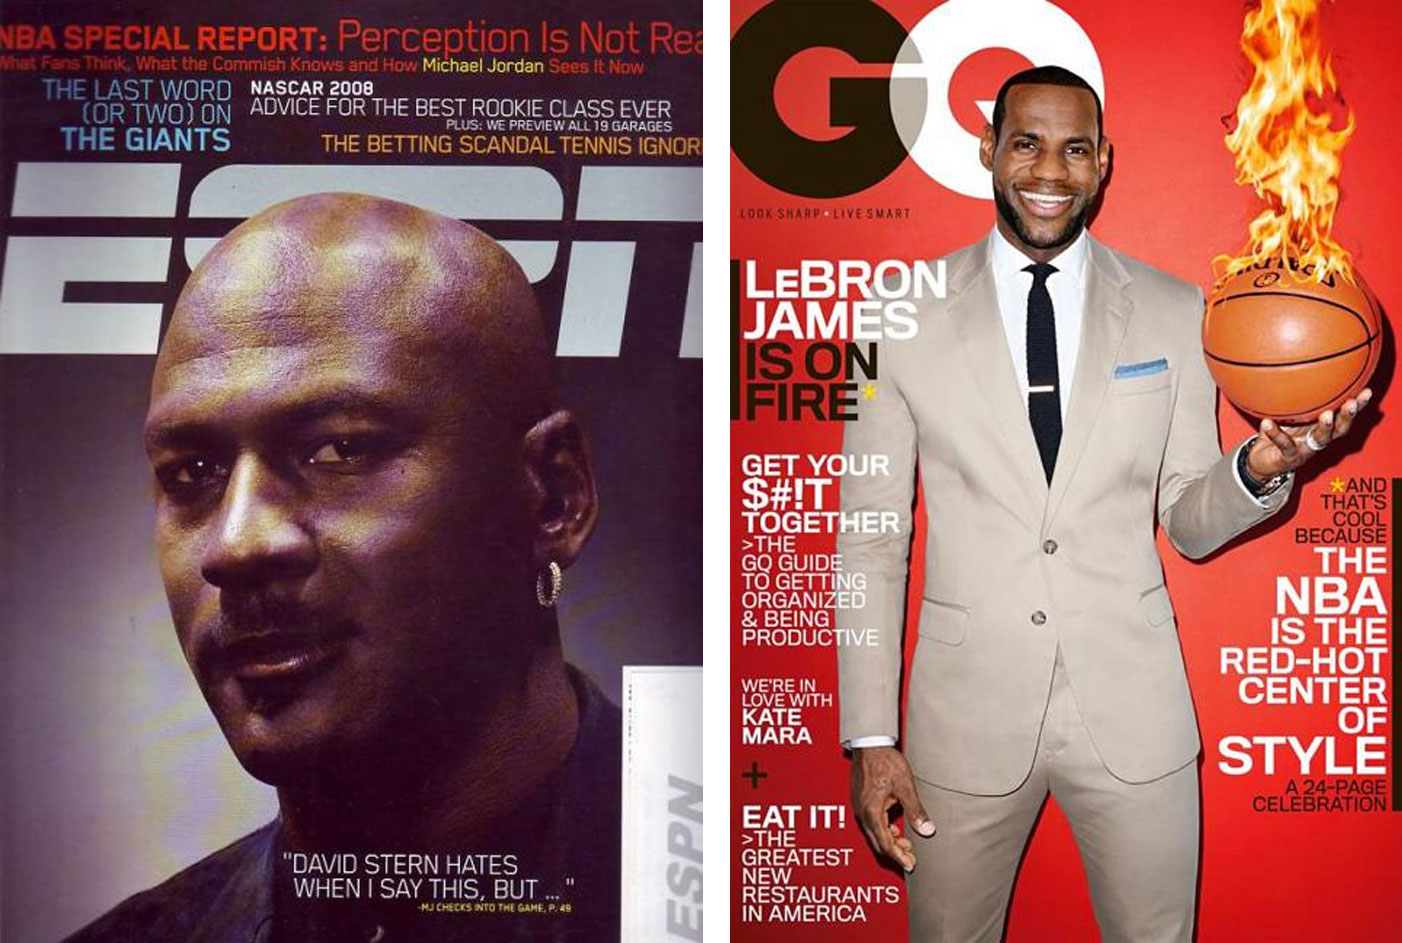 chair covers yes or no converts to bed canada the lebron sports illustrated cover: pull out a - sbnation.com